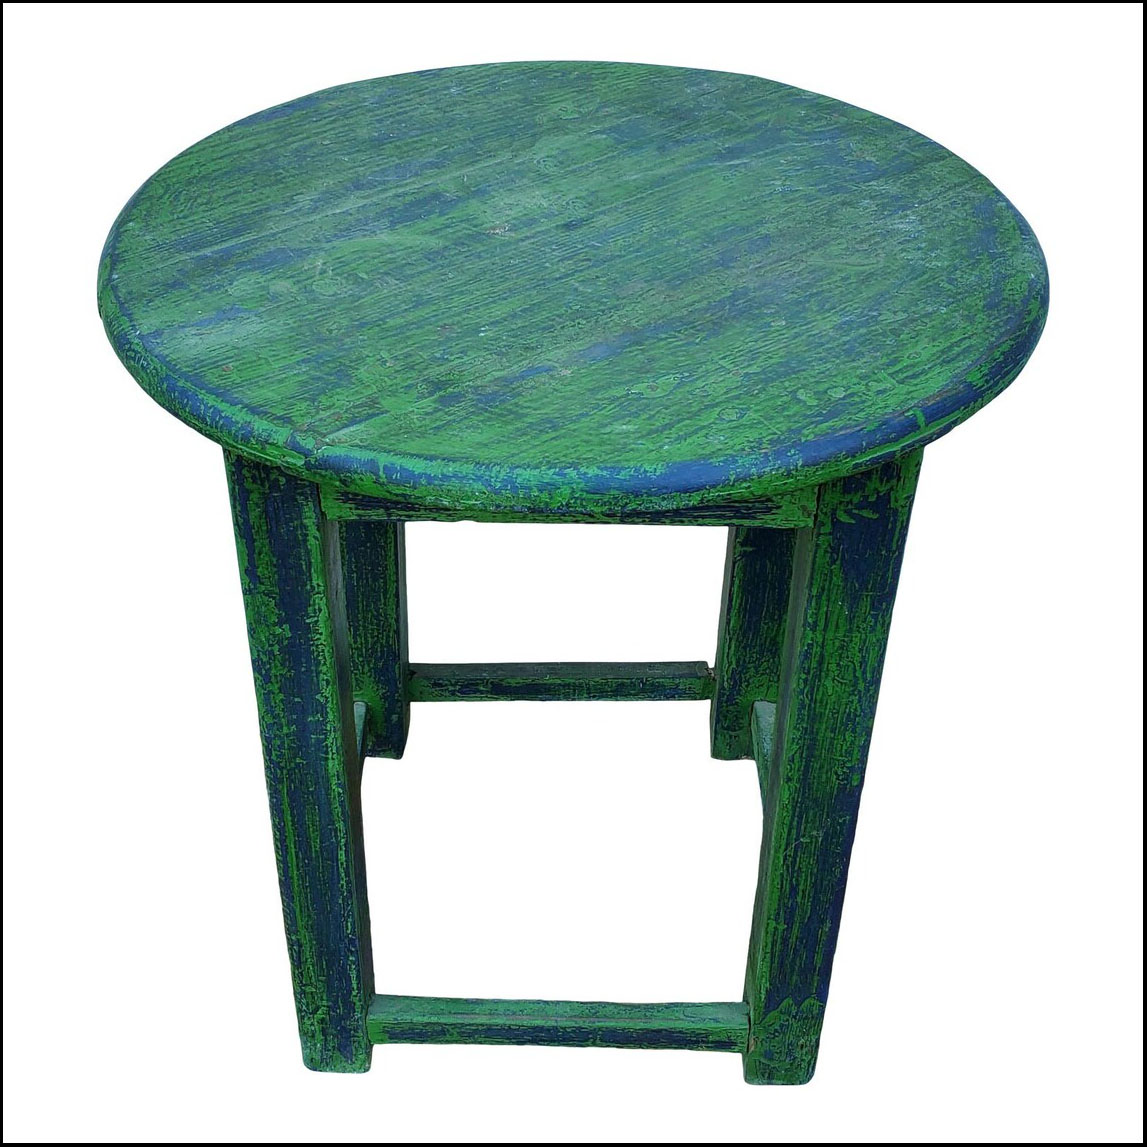 Hand Painted Moroccan Round Wooden Table